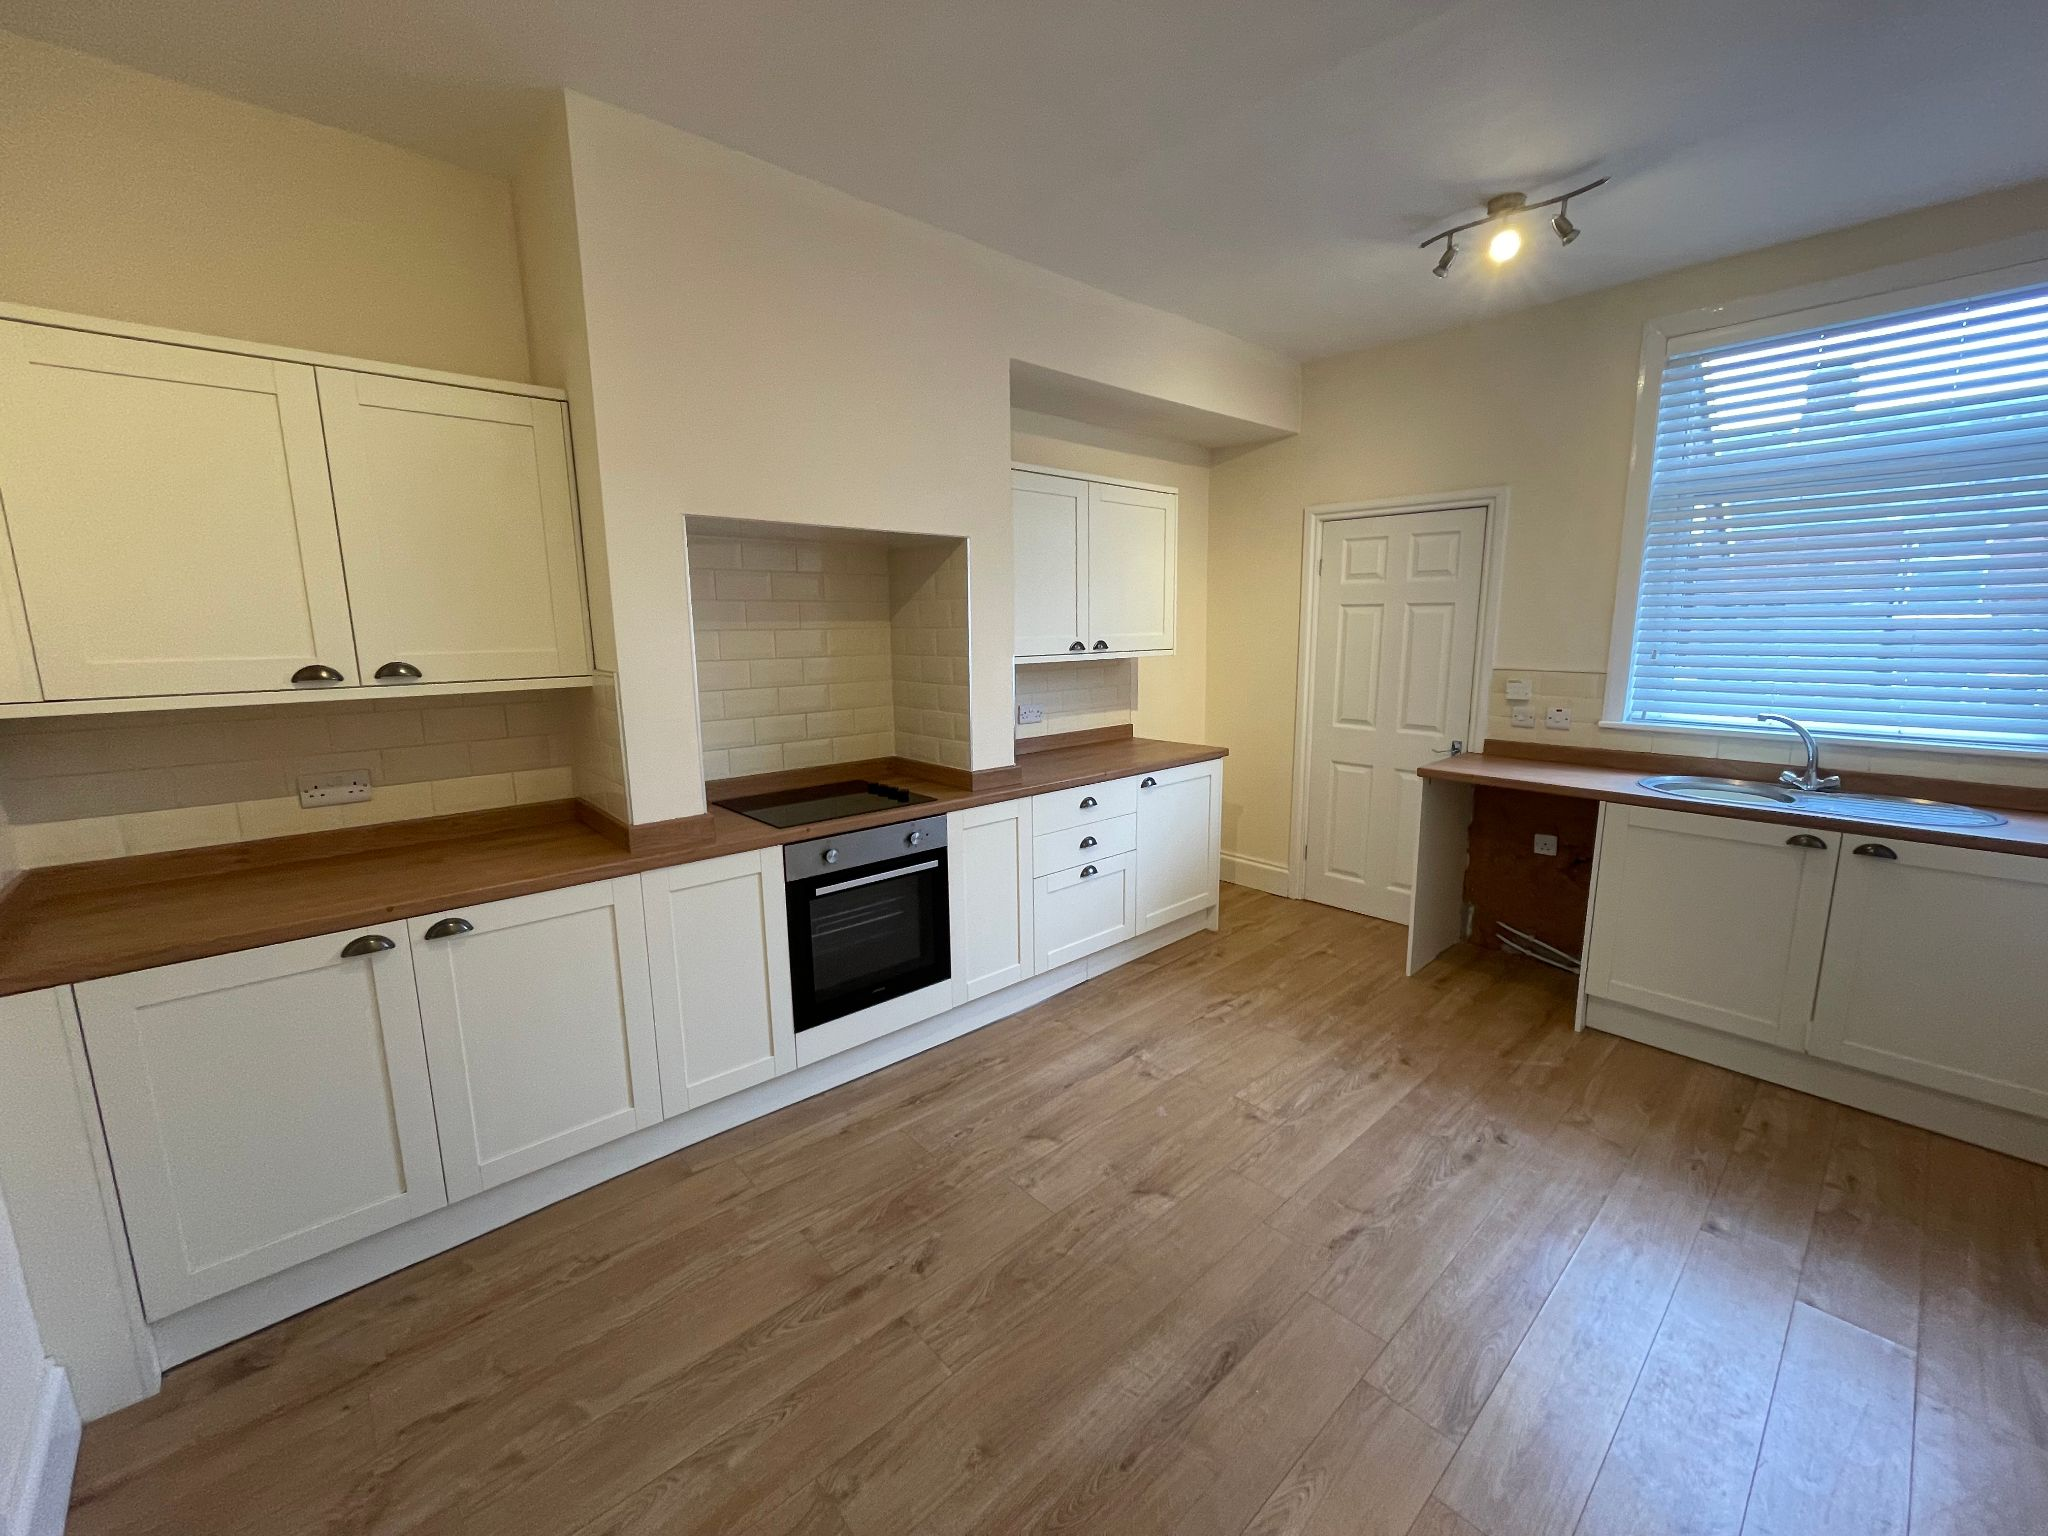 3 bedroom mid terraced house Let in Willington - Photograph 1.